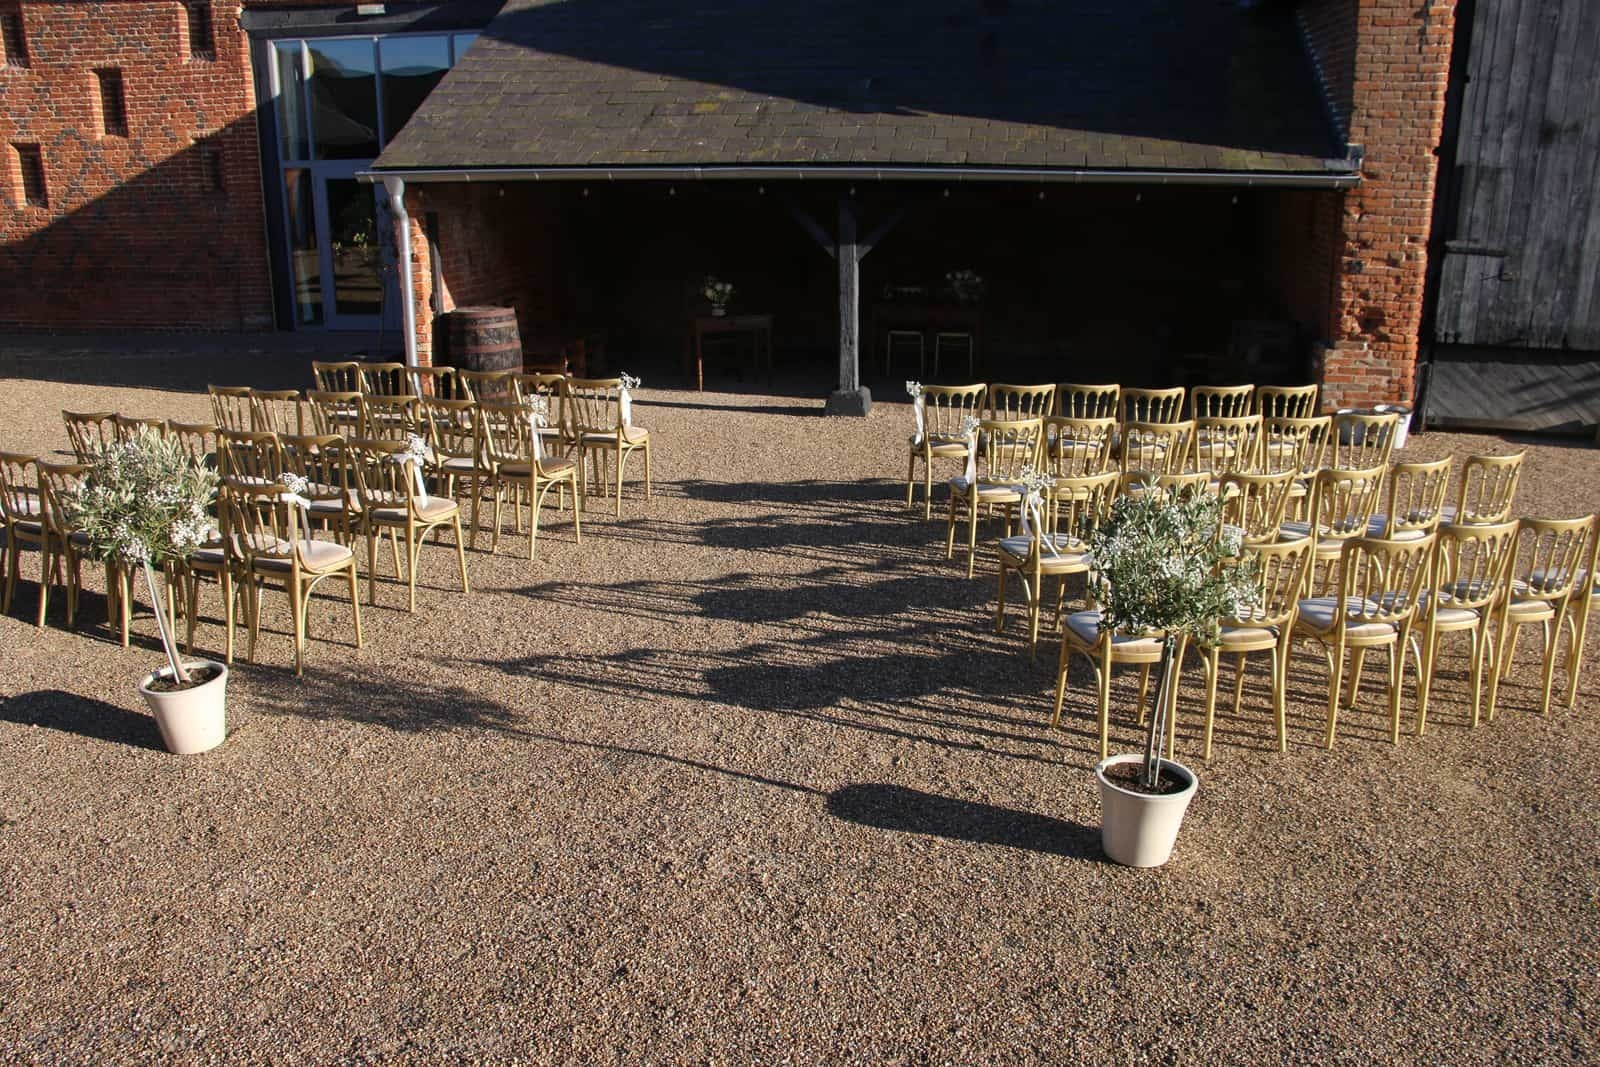 Copdock Hall Chairs set for outside Wedding service